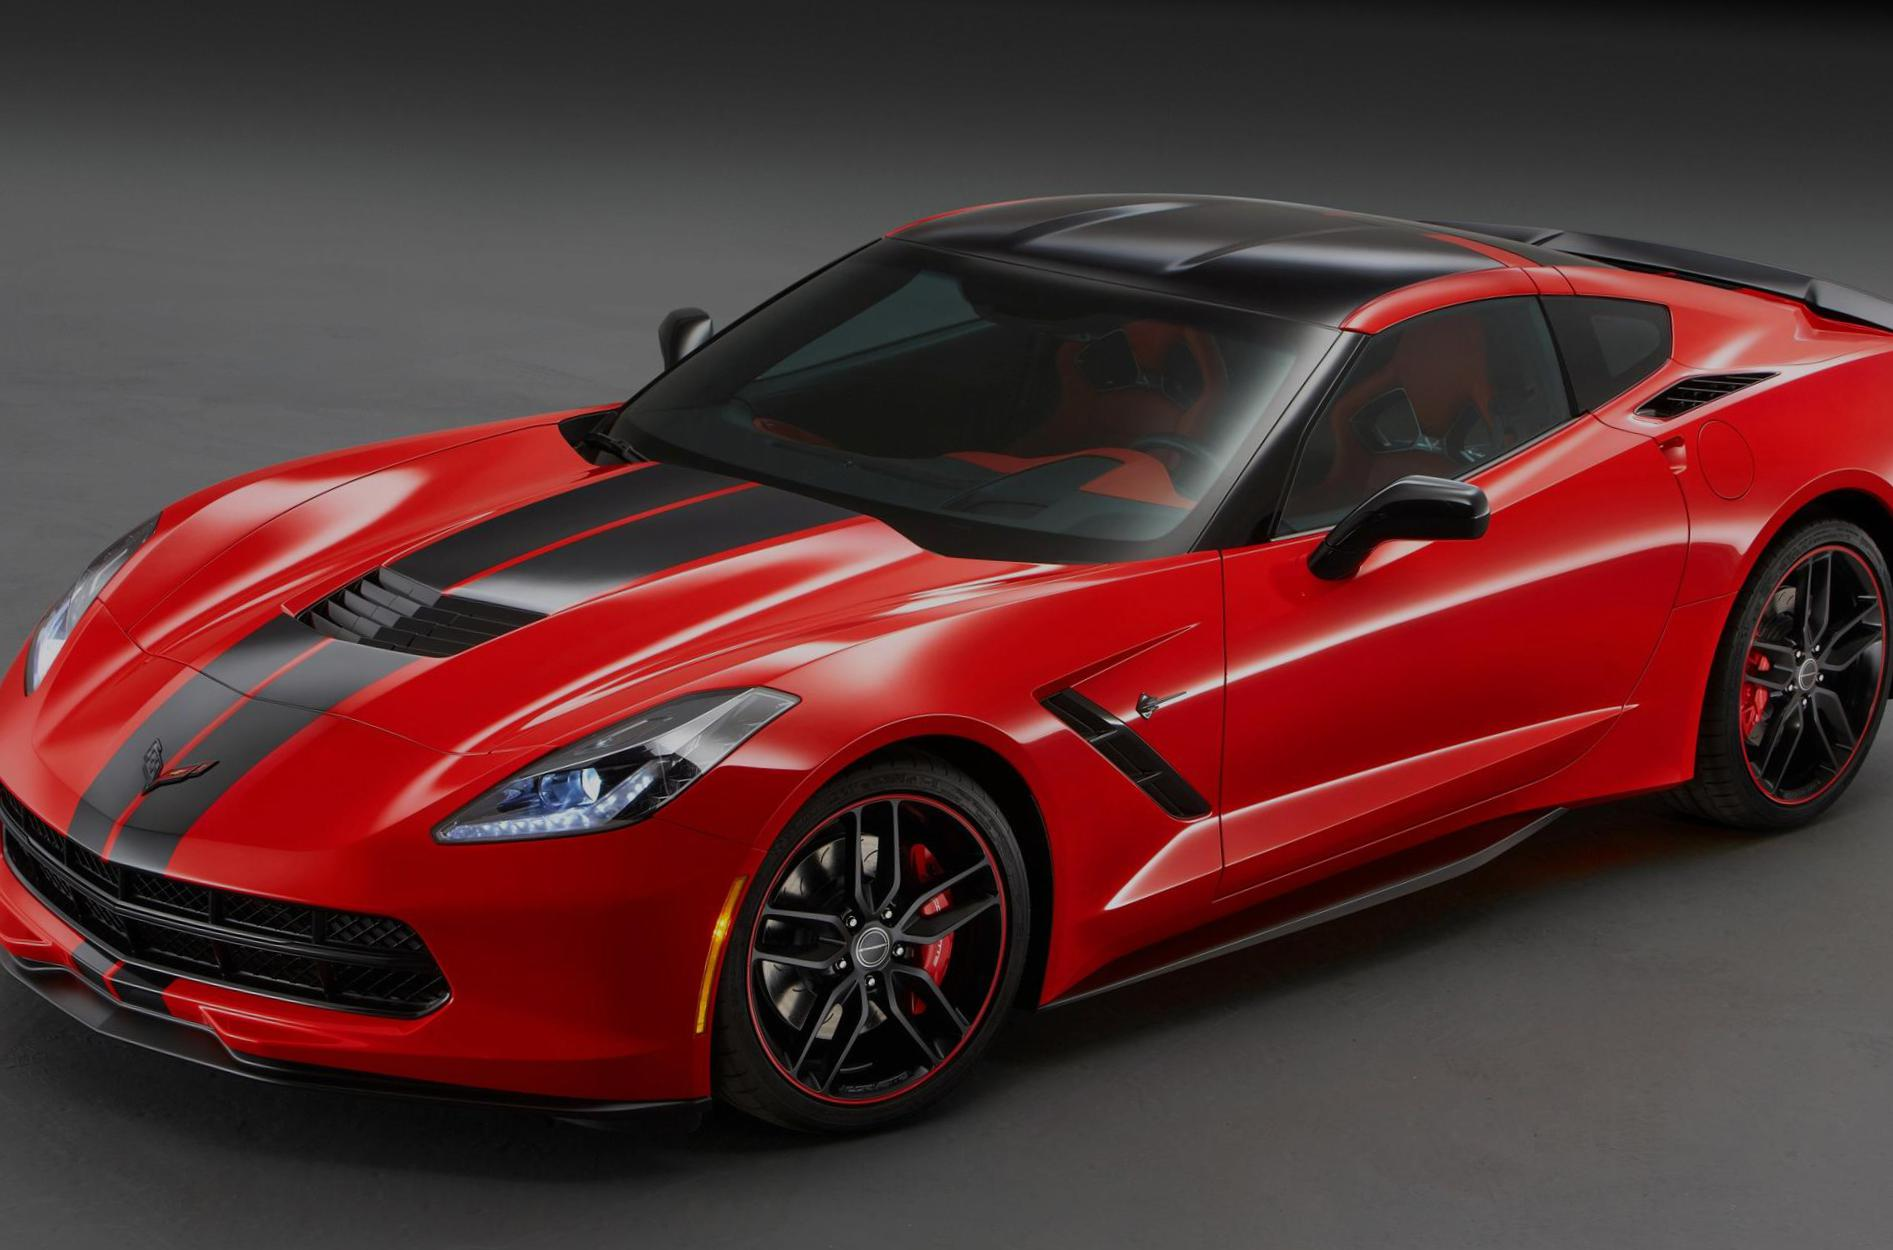 Chevrolet Corvette Stingray Coupe configuration 2012